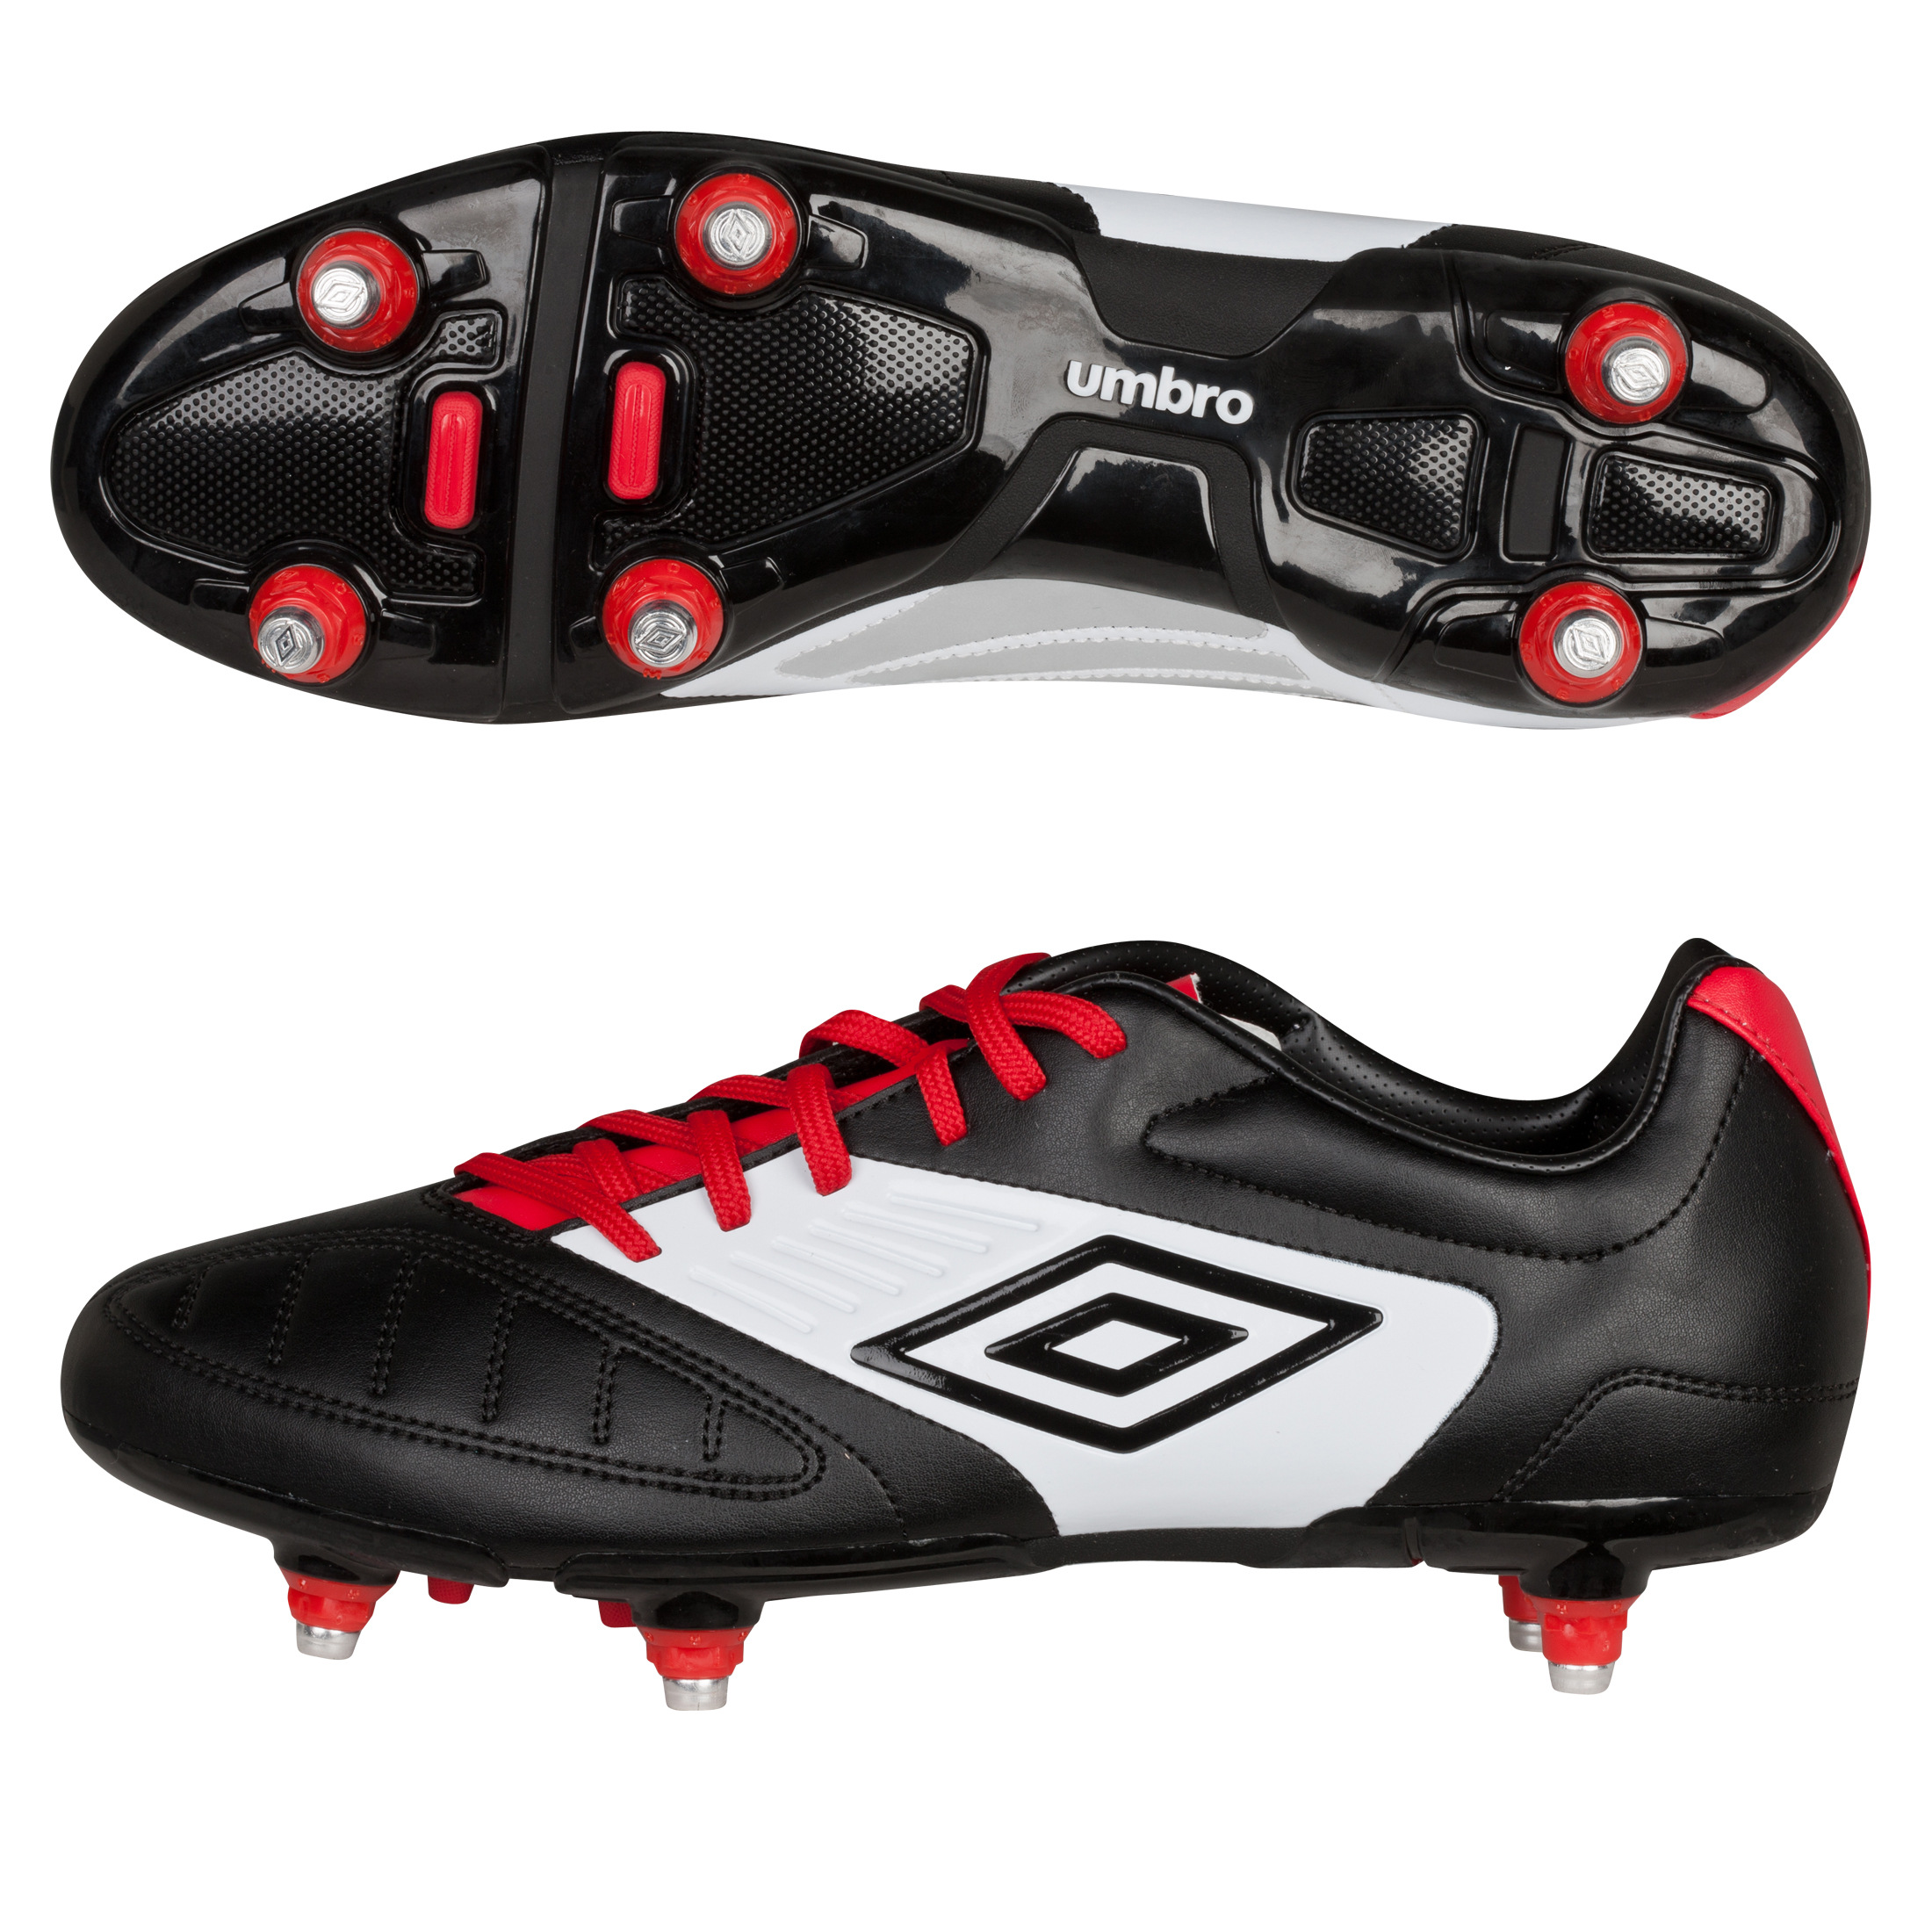 Umbro Geometra Cup Soft Ground Football Boots - Black/White/True Red